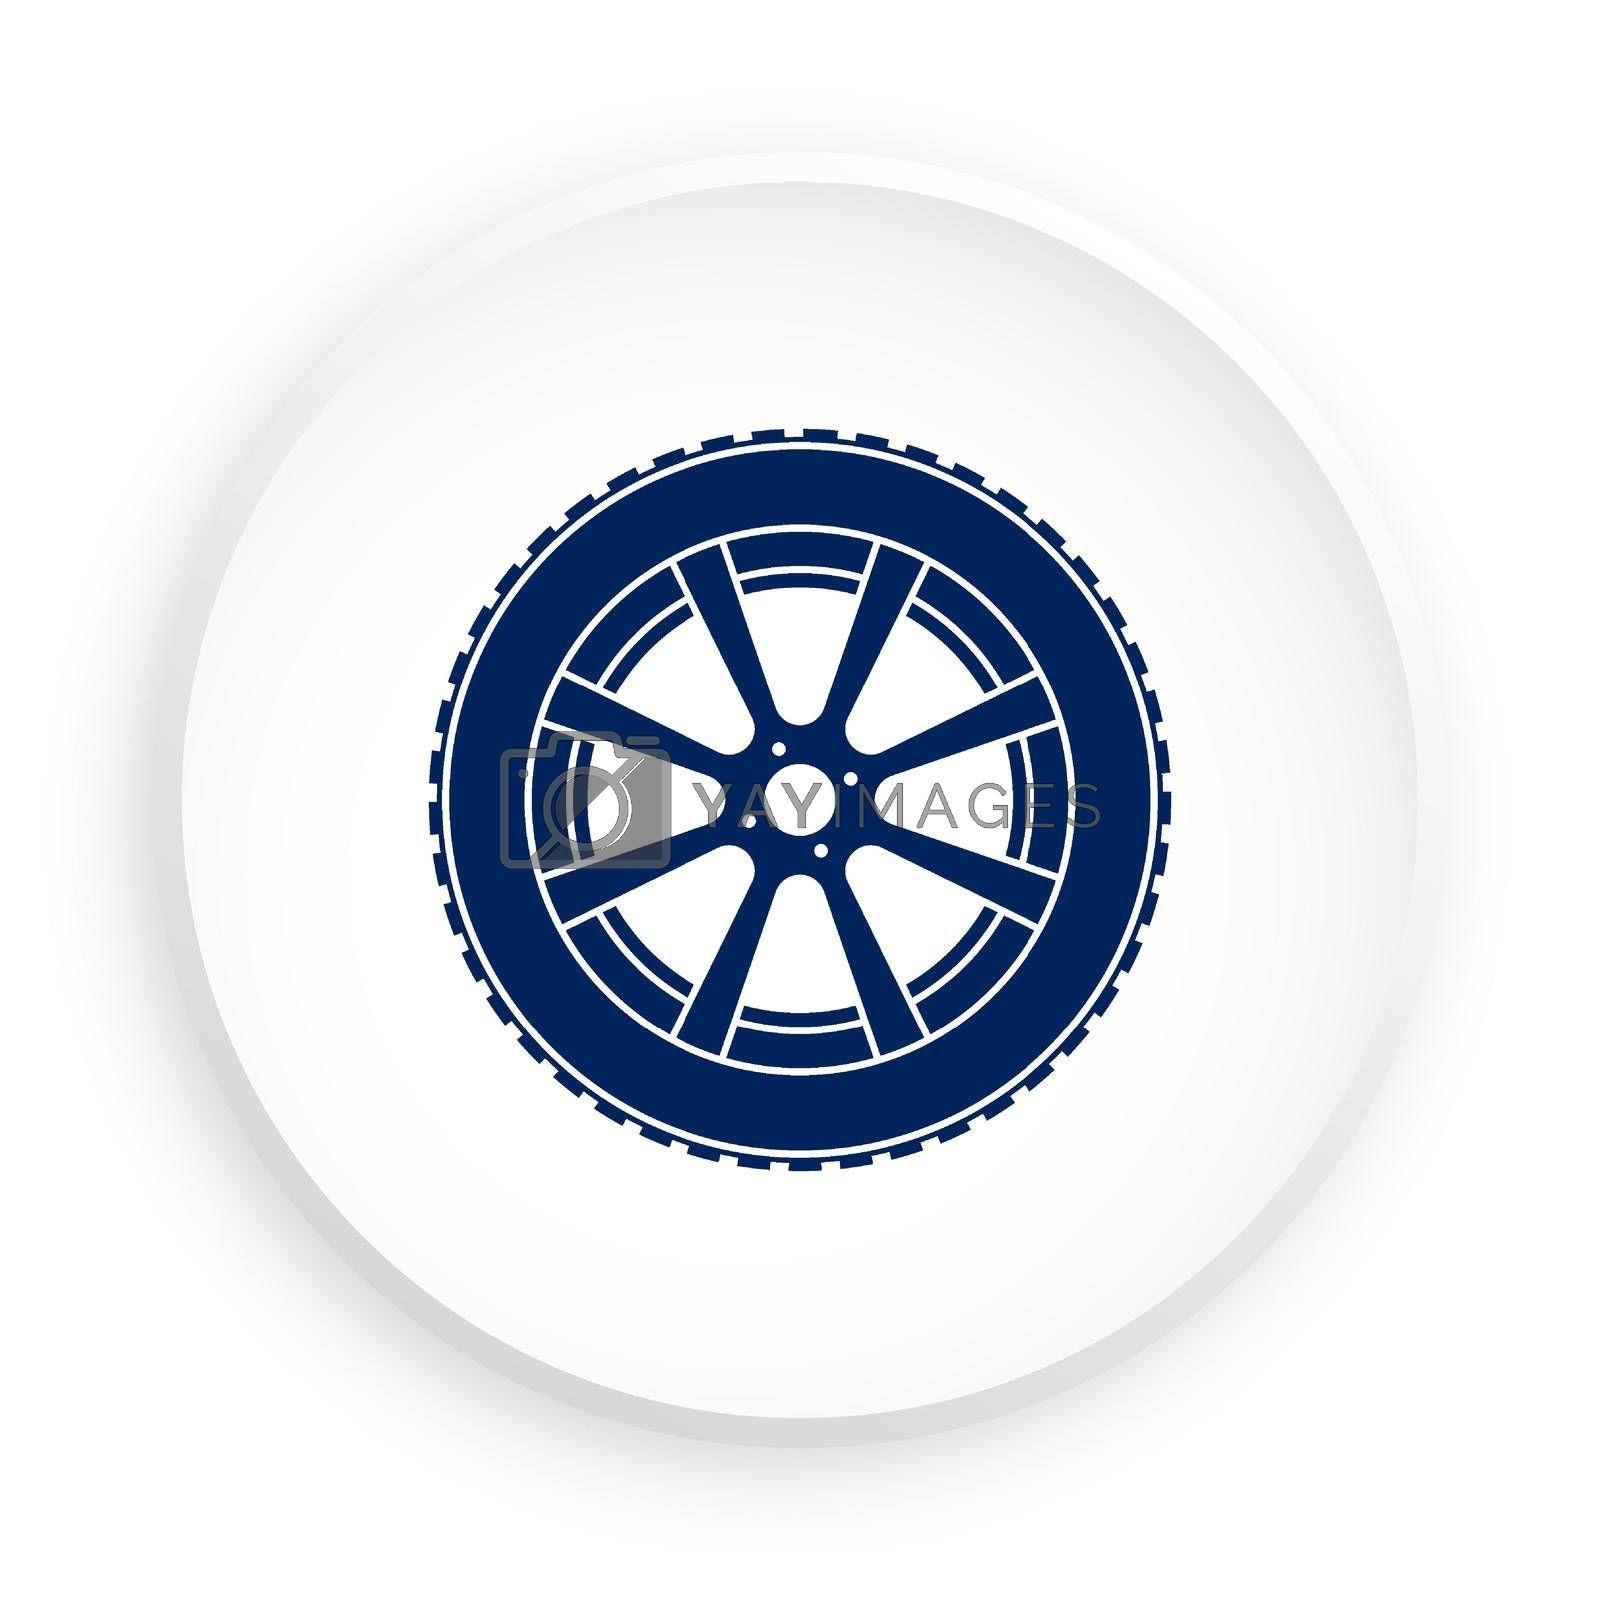 wheel with tire and winter rubber tread in neomorphism style on white background. Winter tires for car. Driving on slippery road. Driving safety. Vector